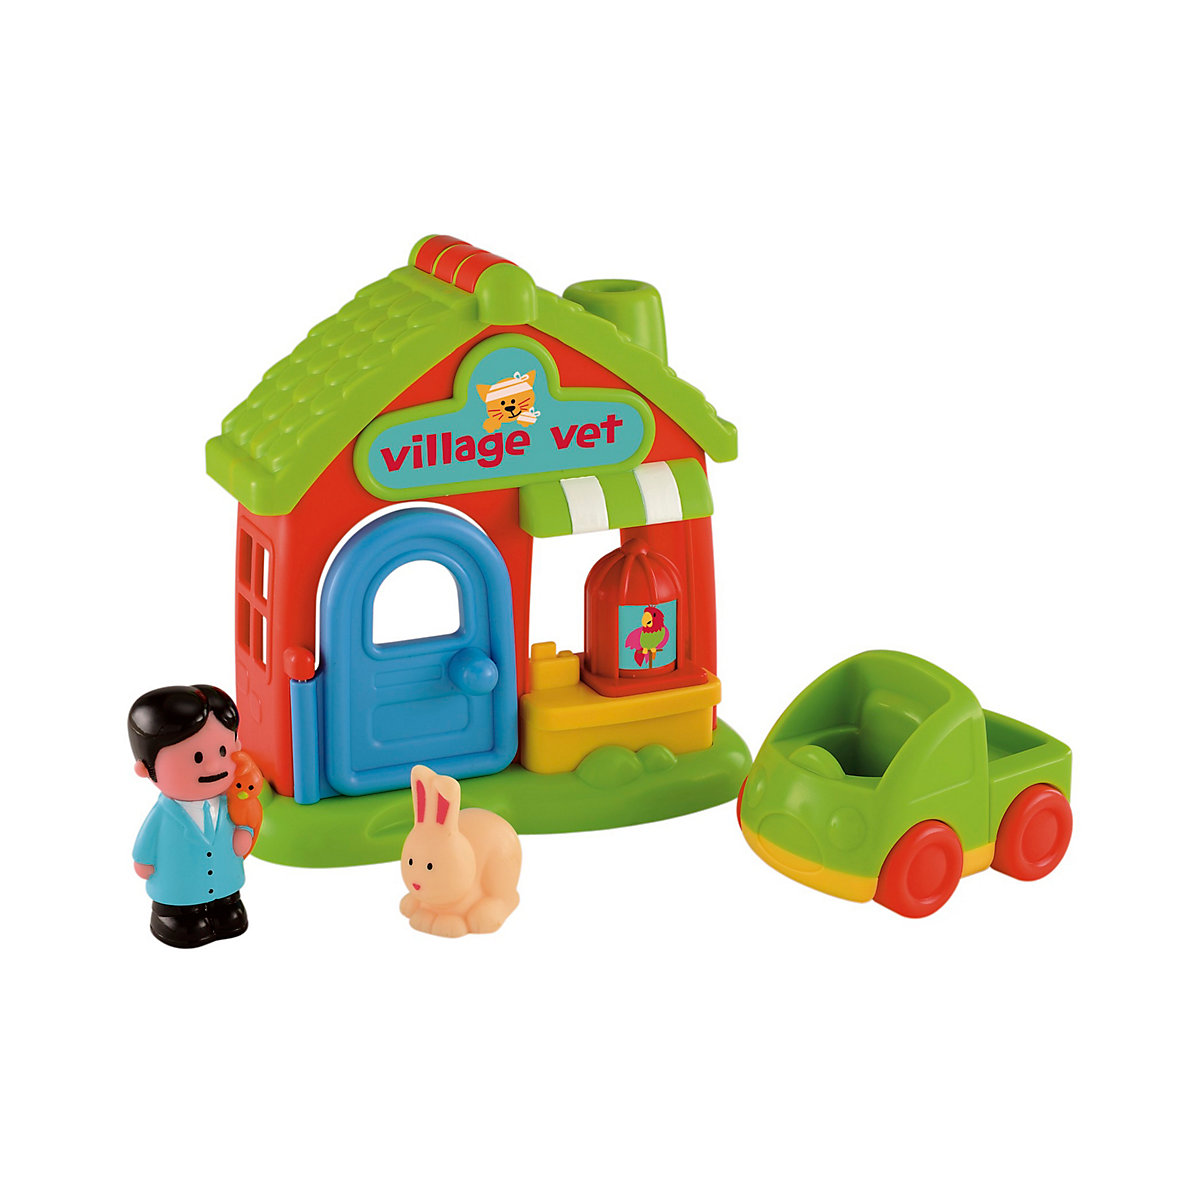 New ELC Boys and Girls Happyland Village Vet Toy From 18 months - Toddler Gifts